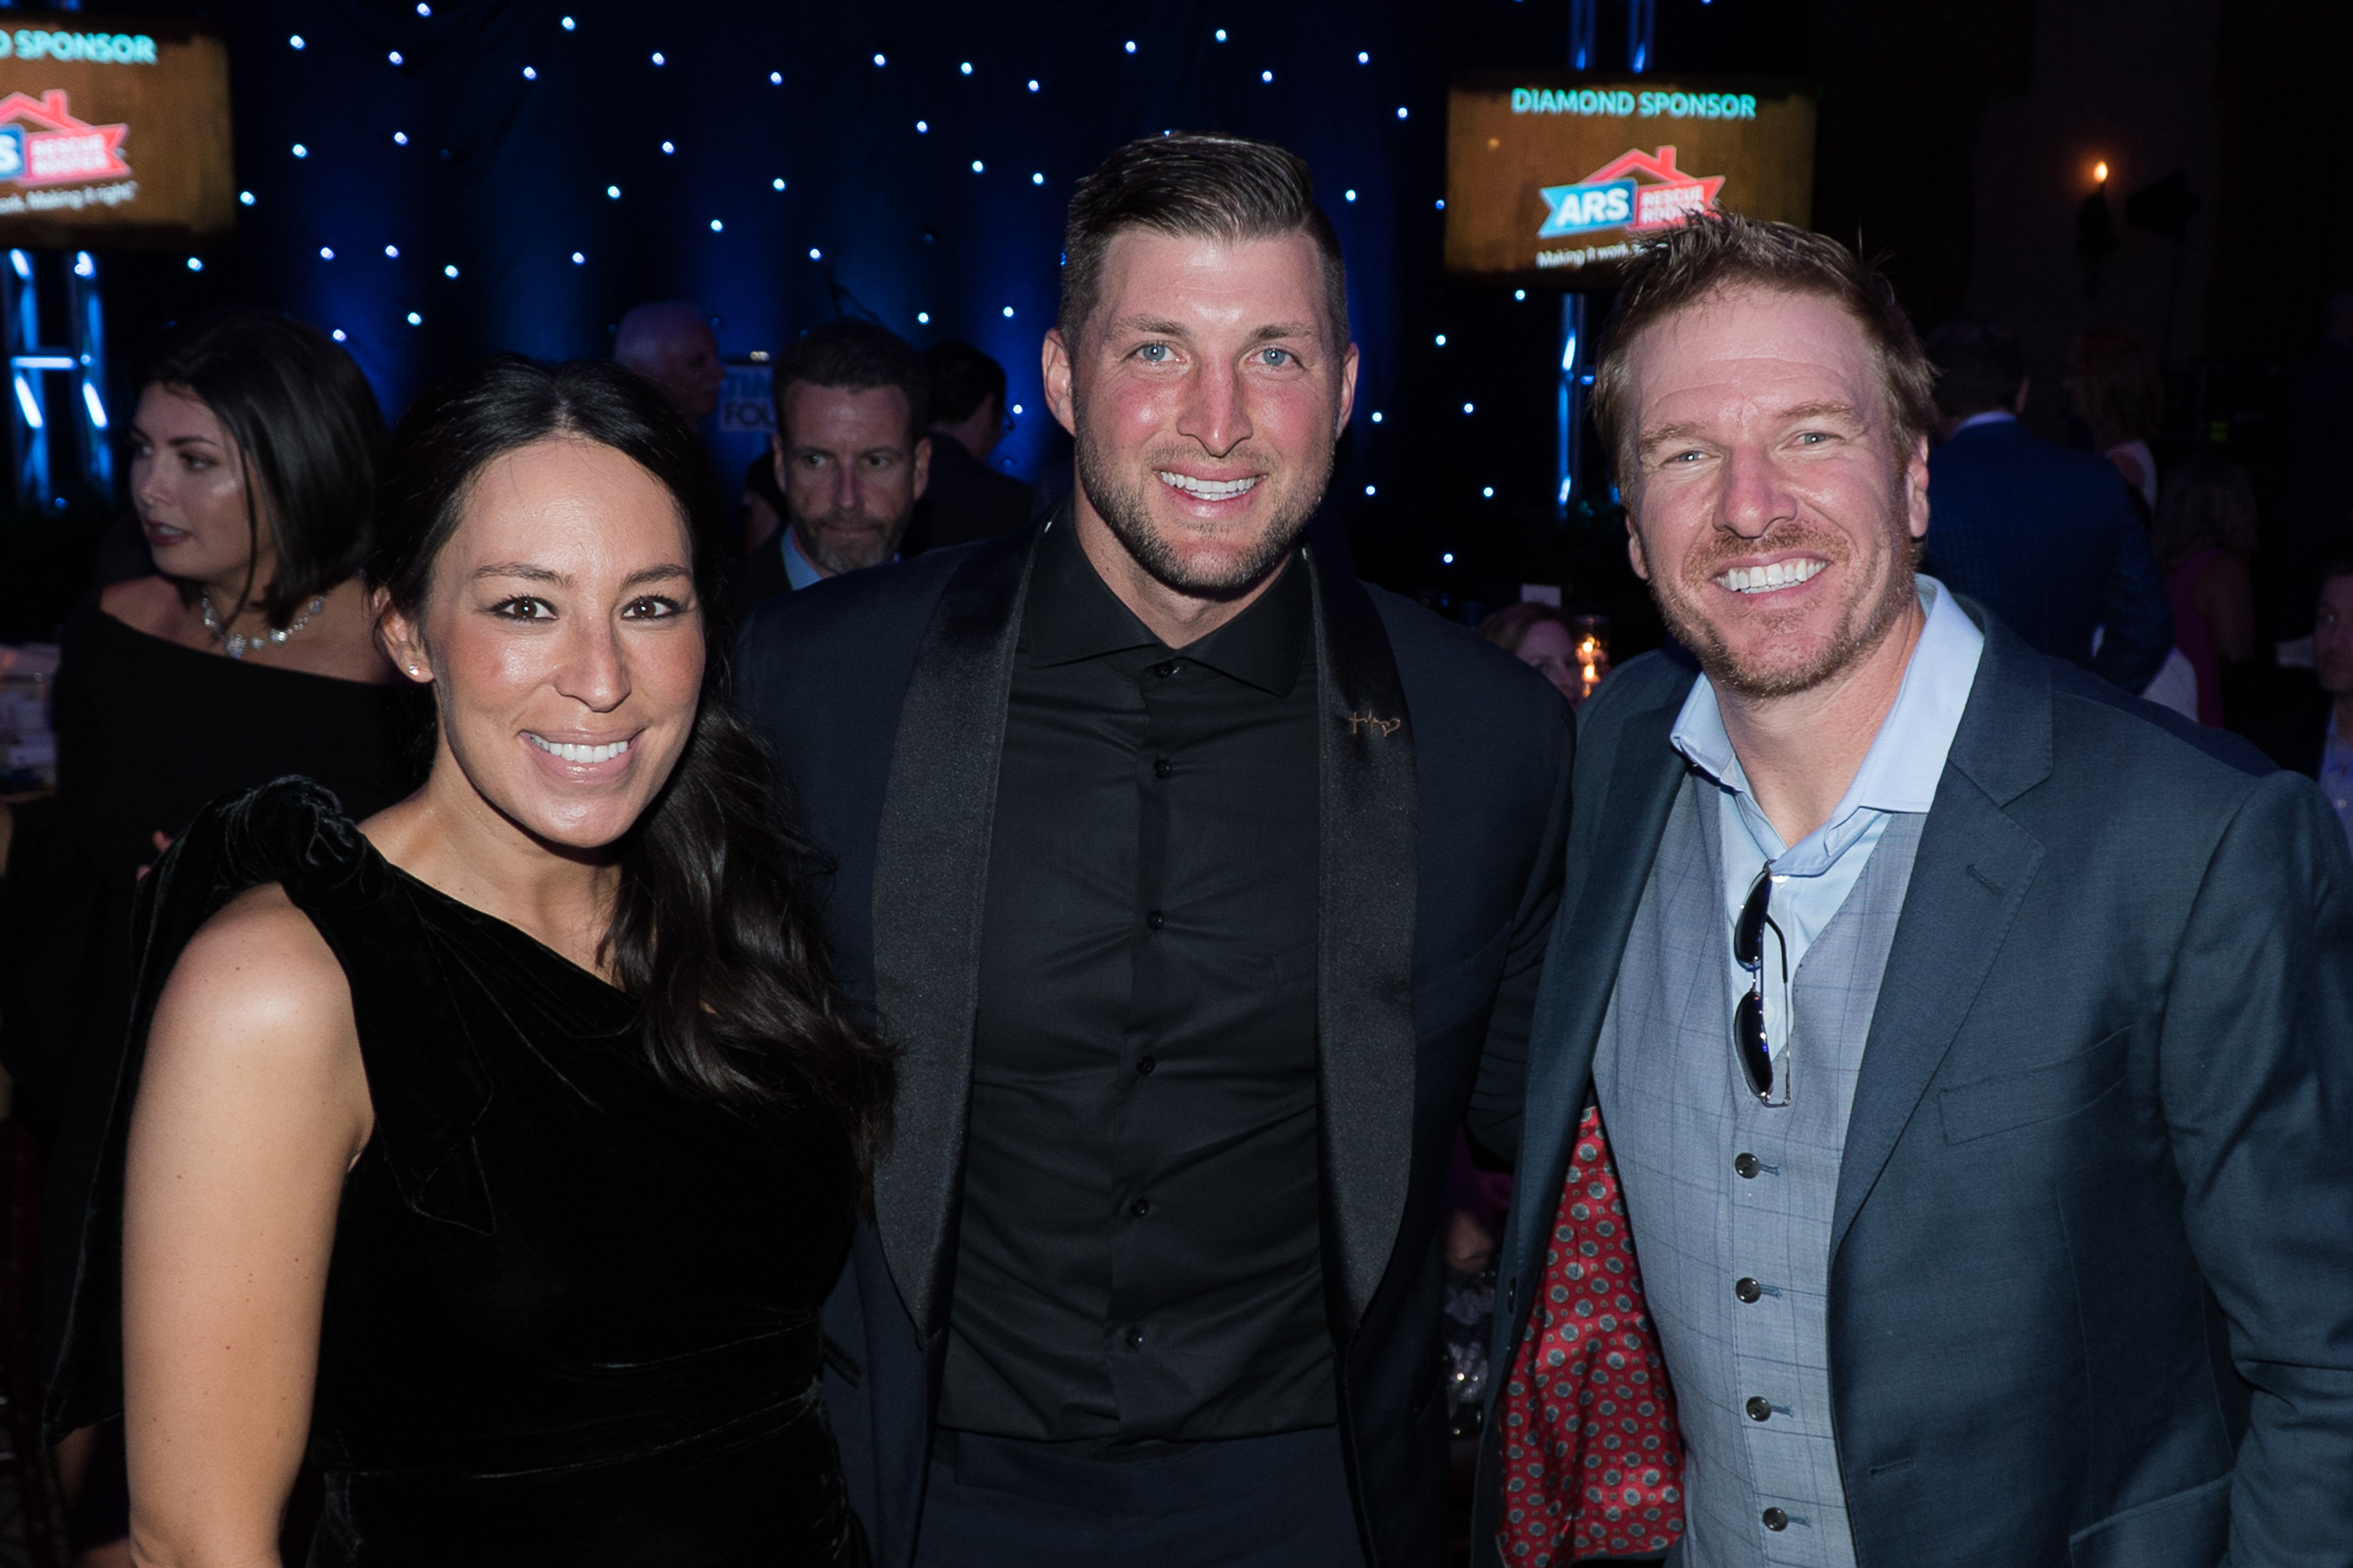 Tim tebow foundation celebrity gala and golf classic for Chip and joanna gaines meet and greet